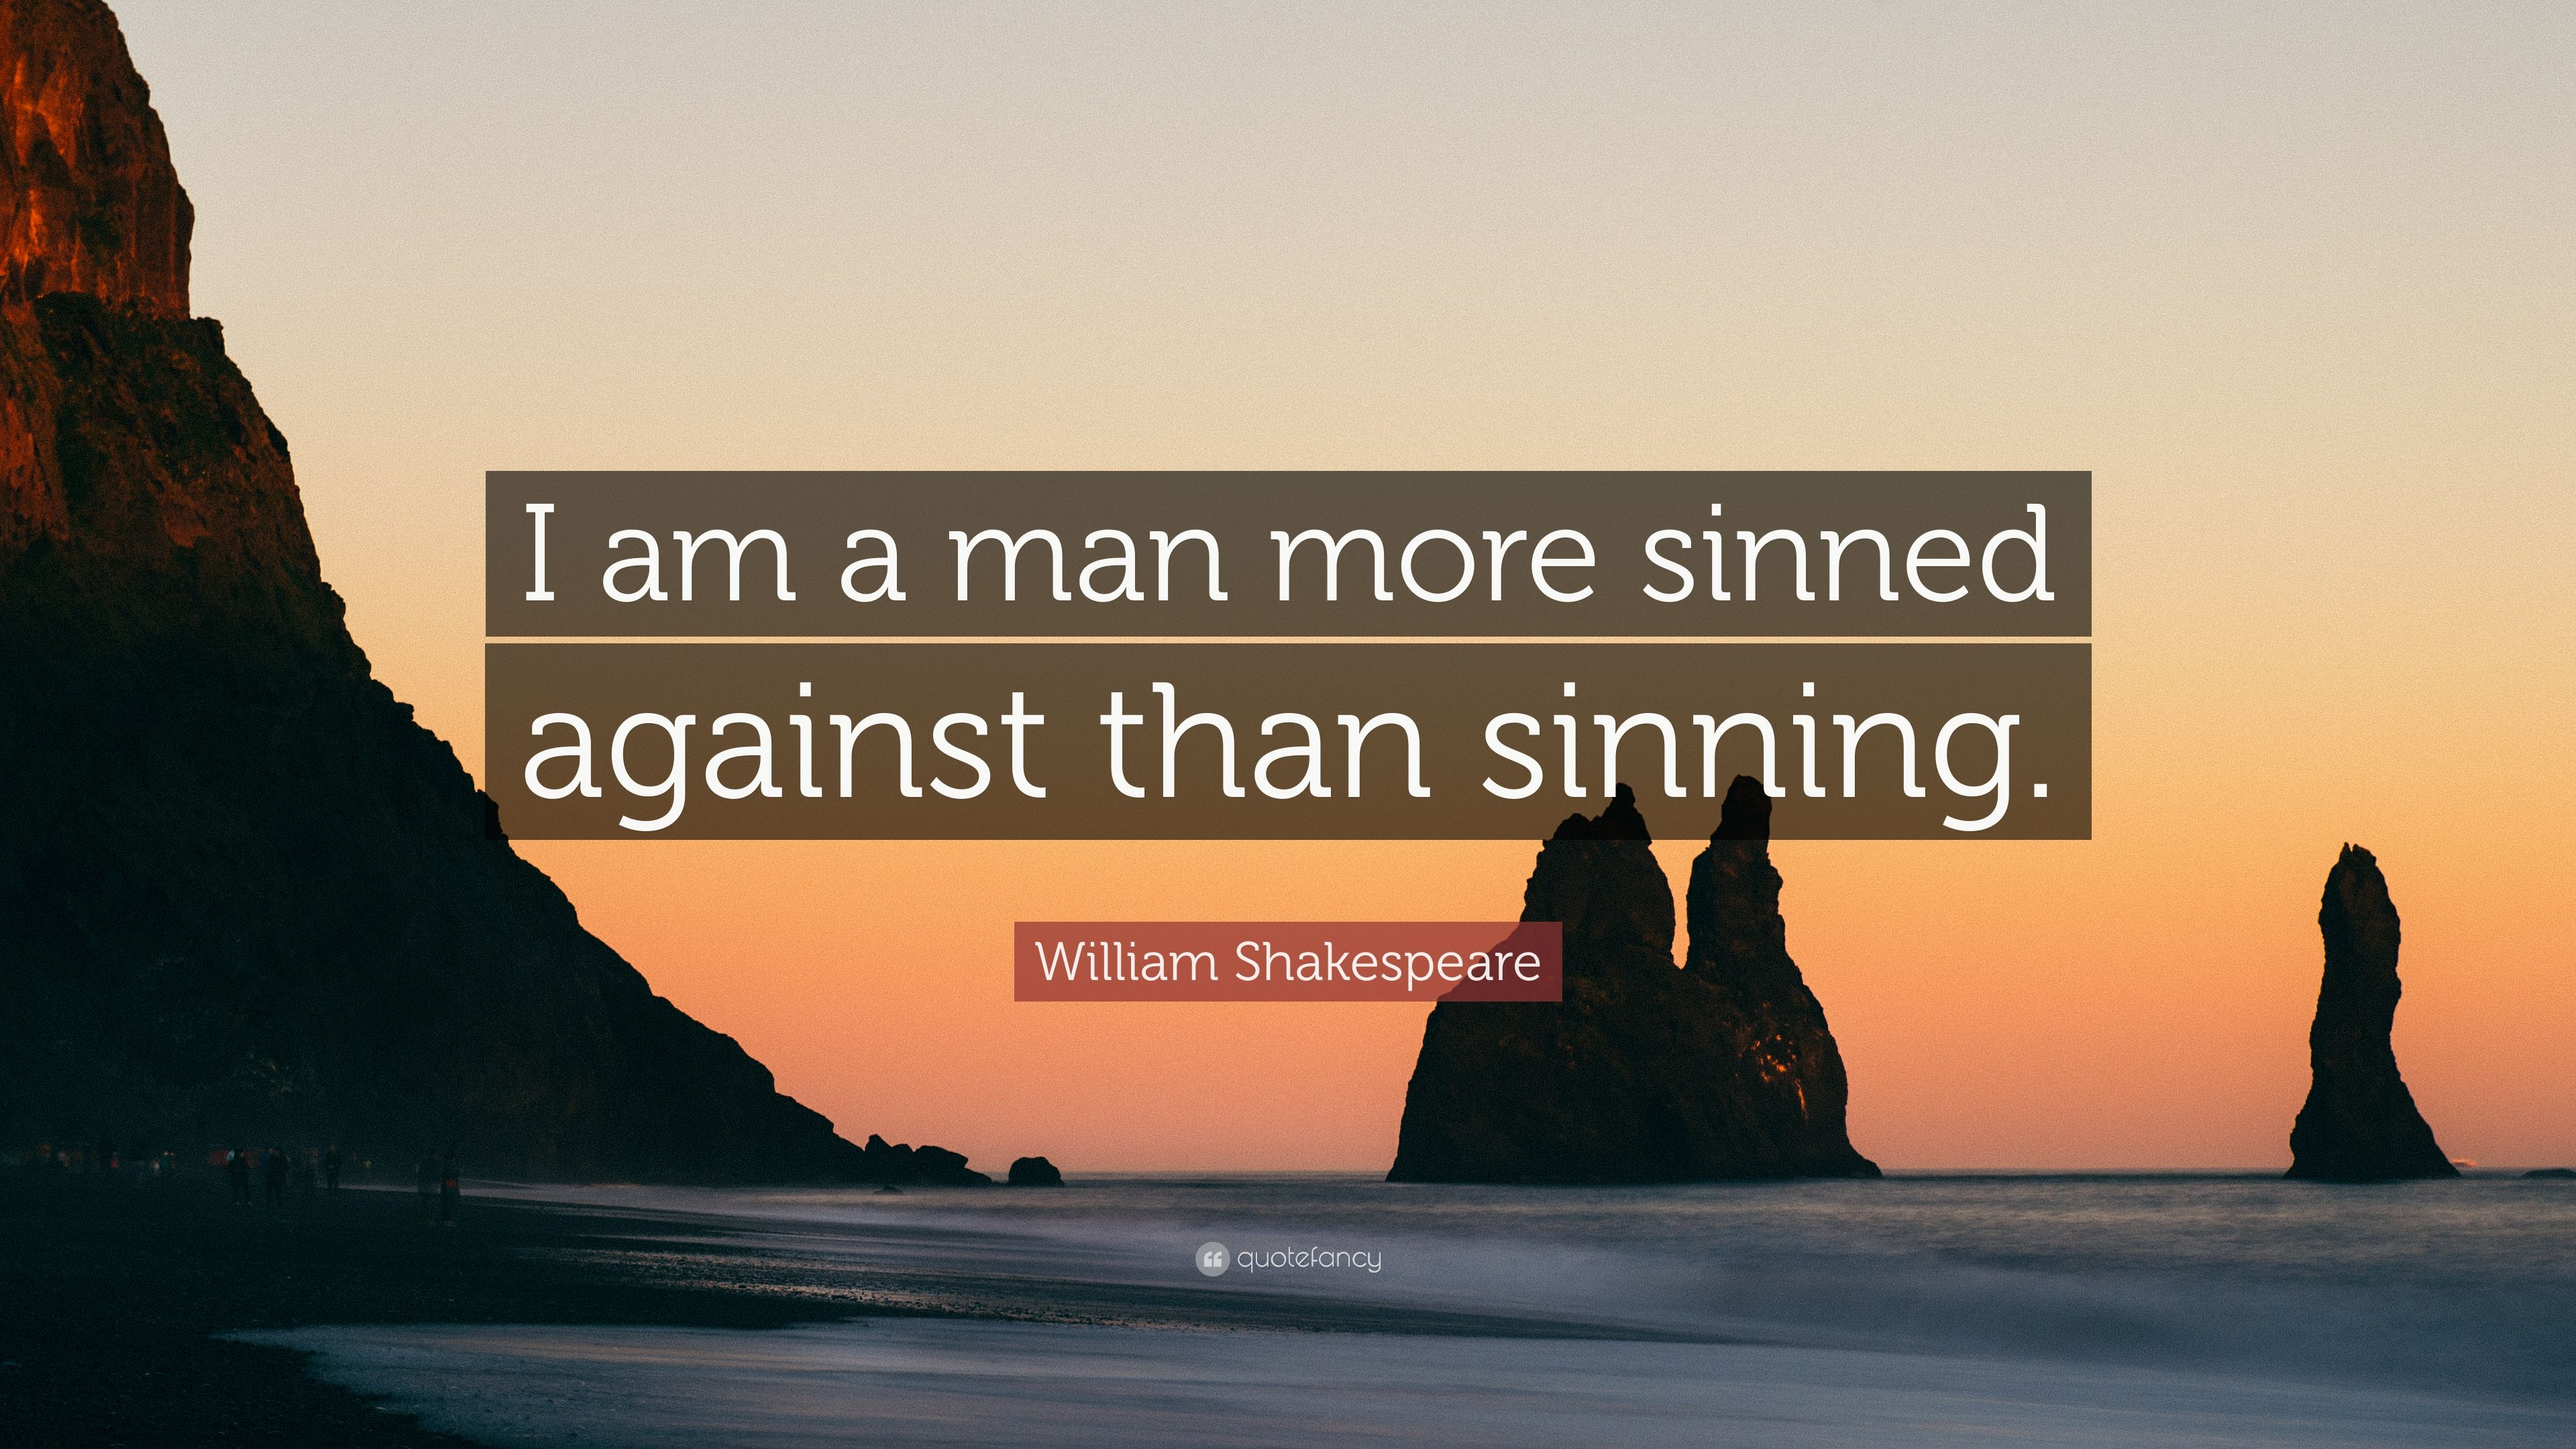 a man more sinned against than sinning